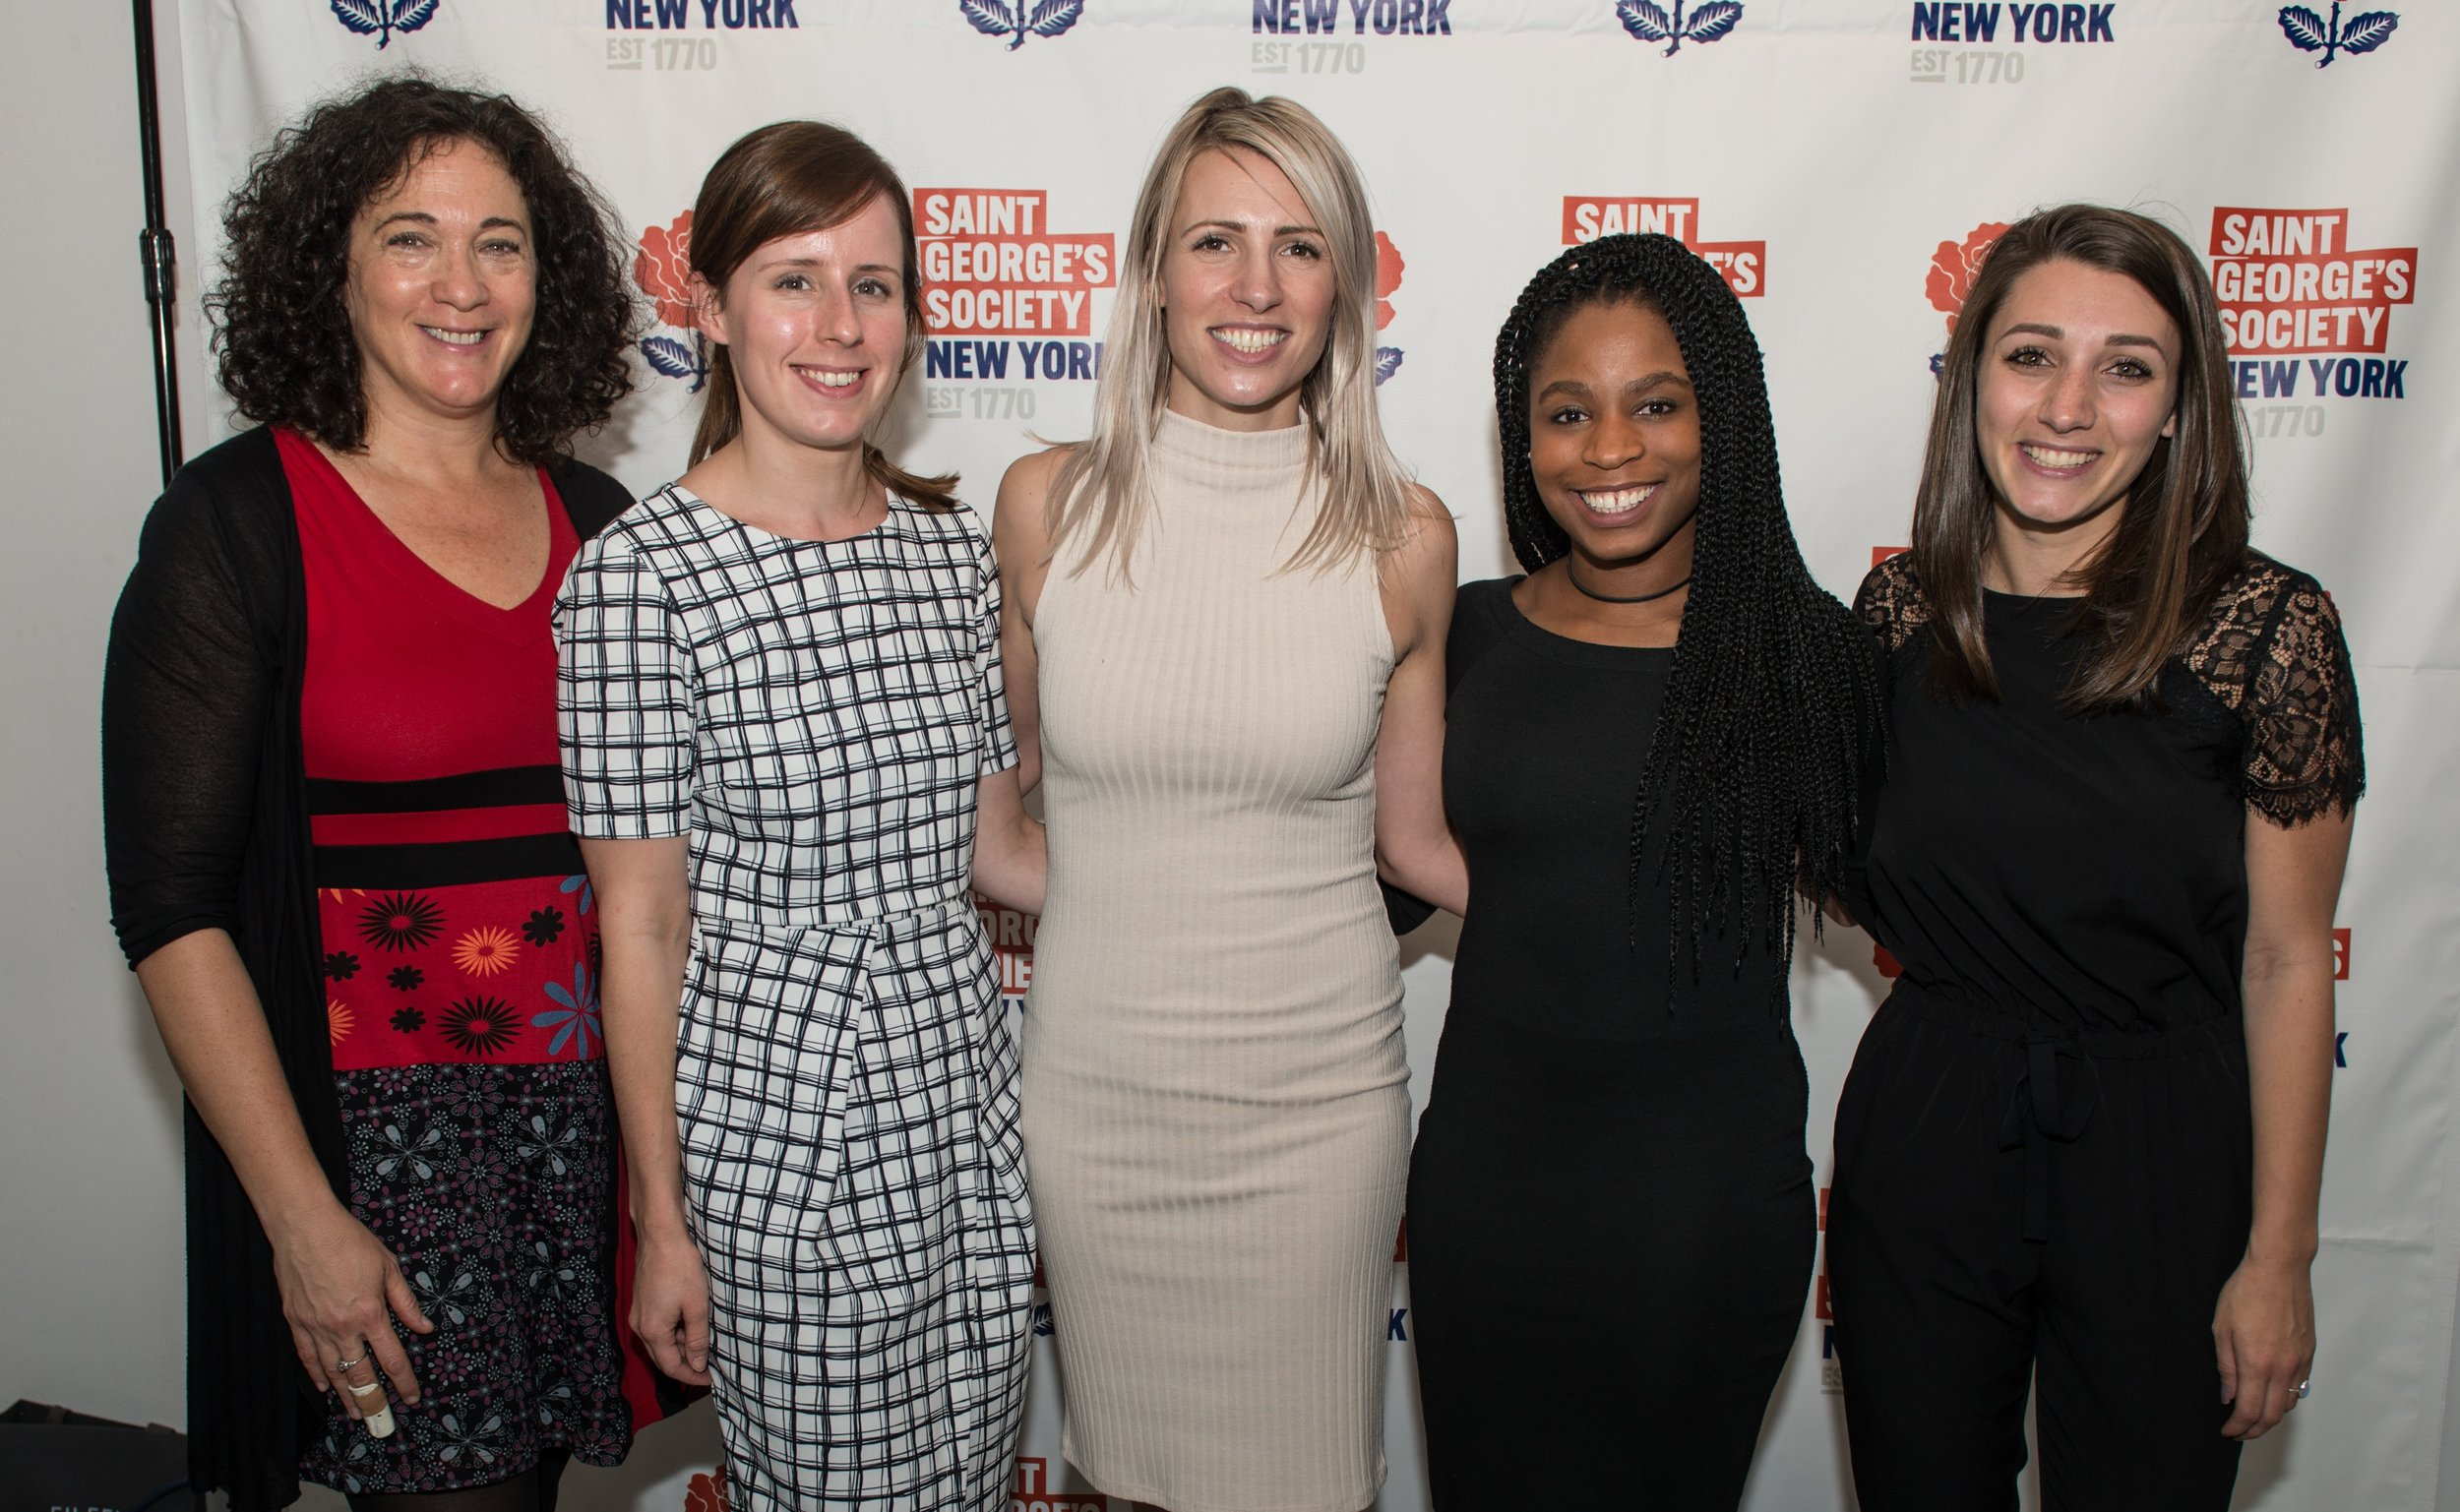 The St. George's Society team (L to R): Julie Rosenberg, Grace Owen, Anna Titley, Hastings Hill, Eliane Abou-Assi.